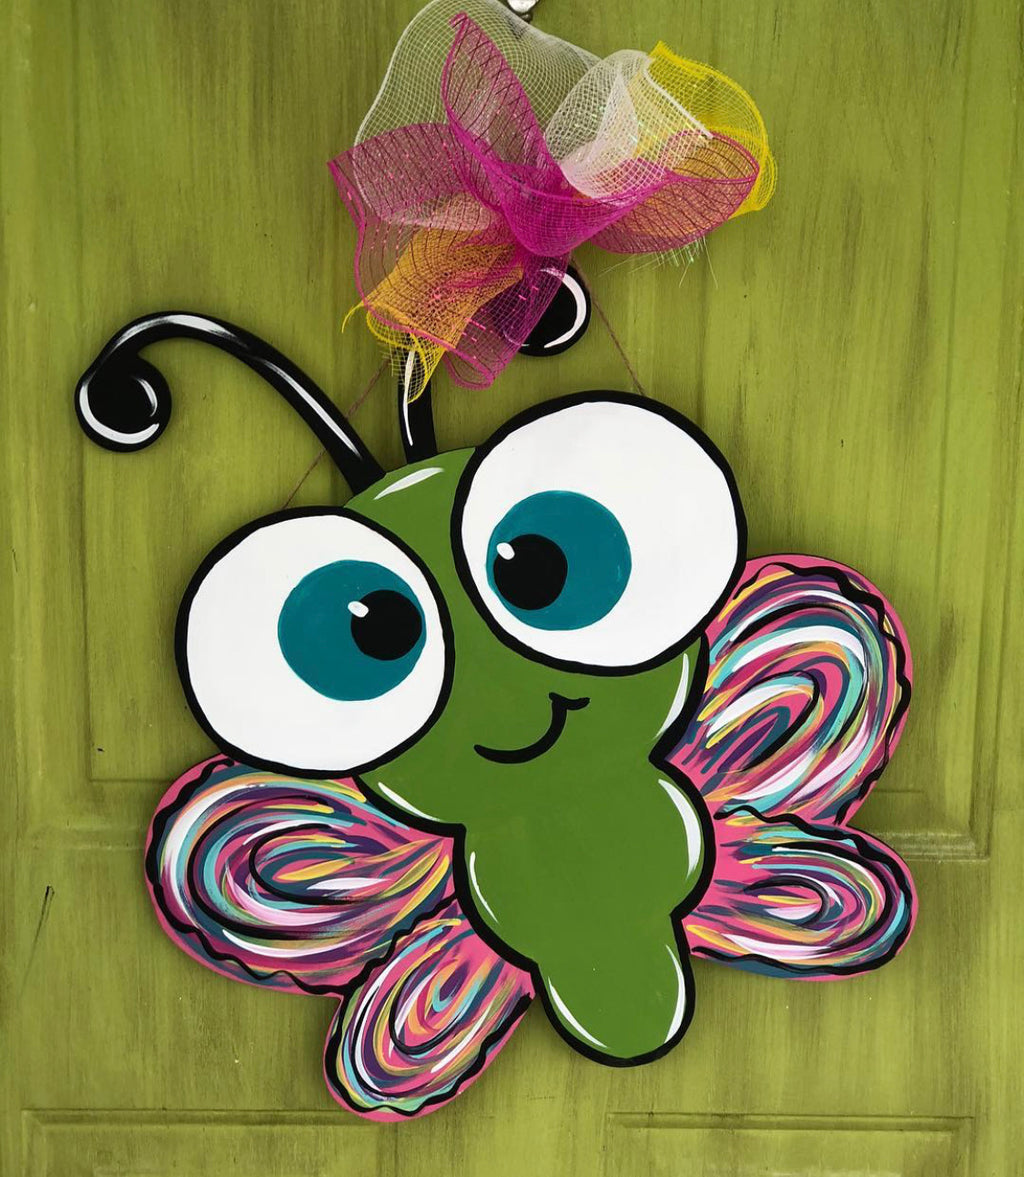 Whimsical Butterfly Door Hanger - Instructional Video Tutorial